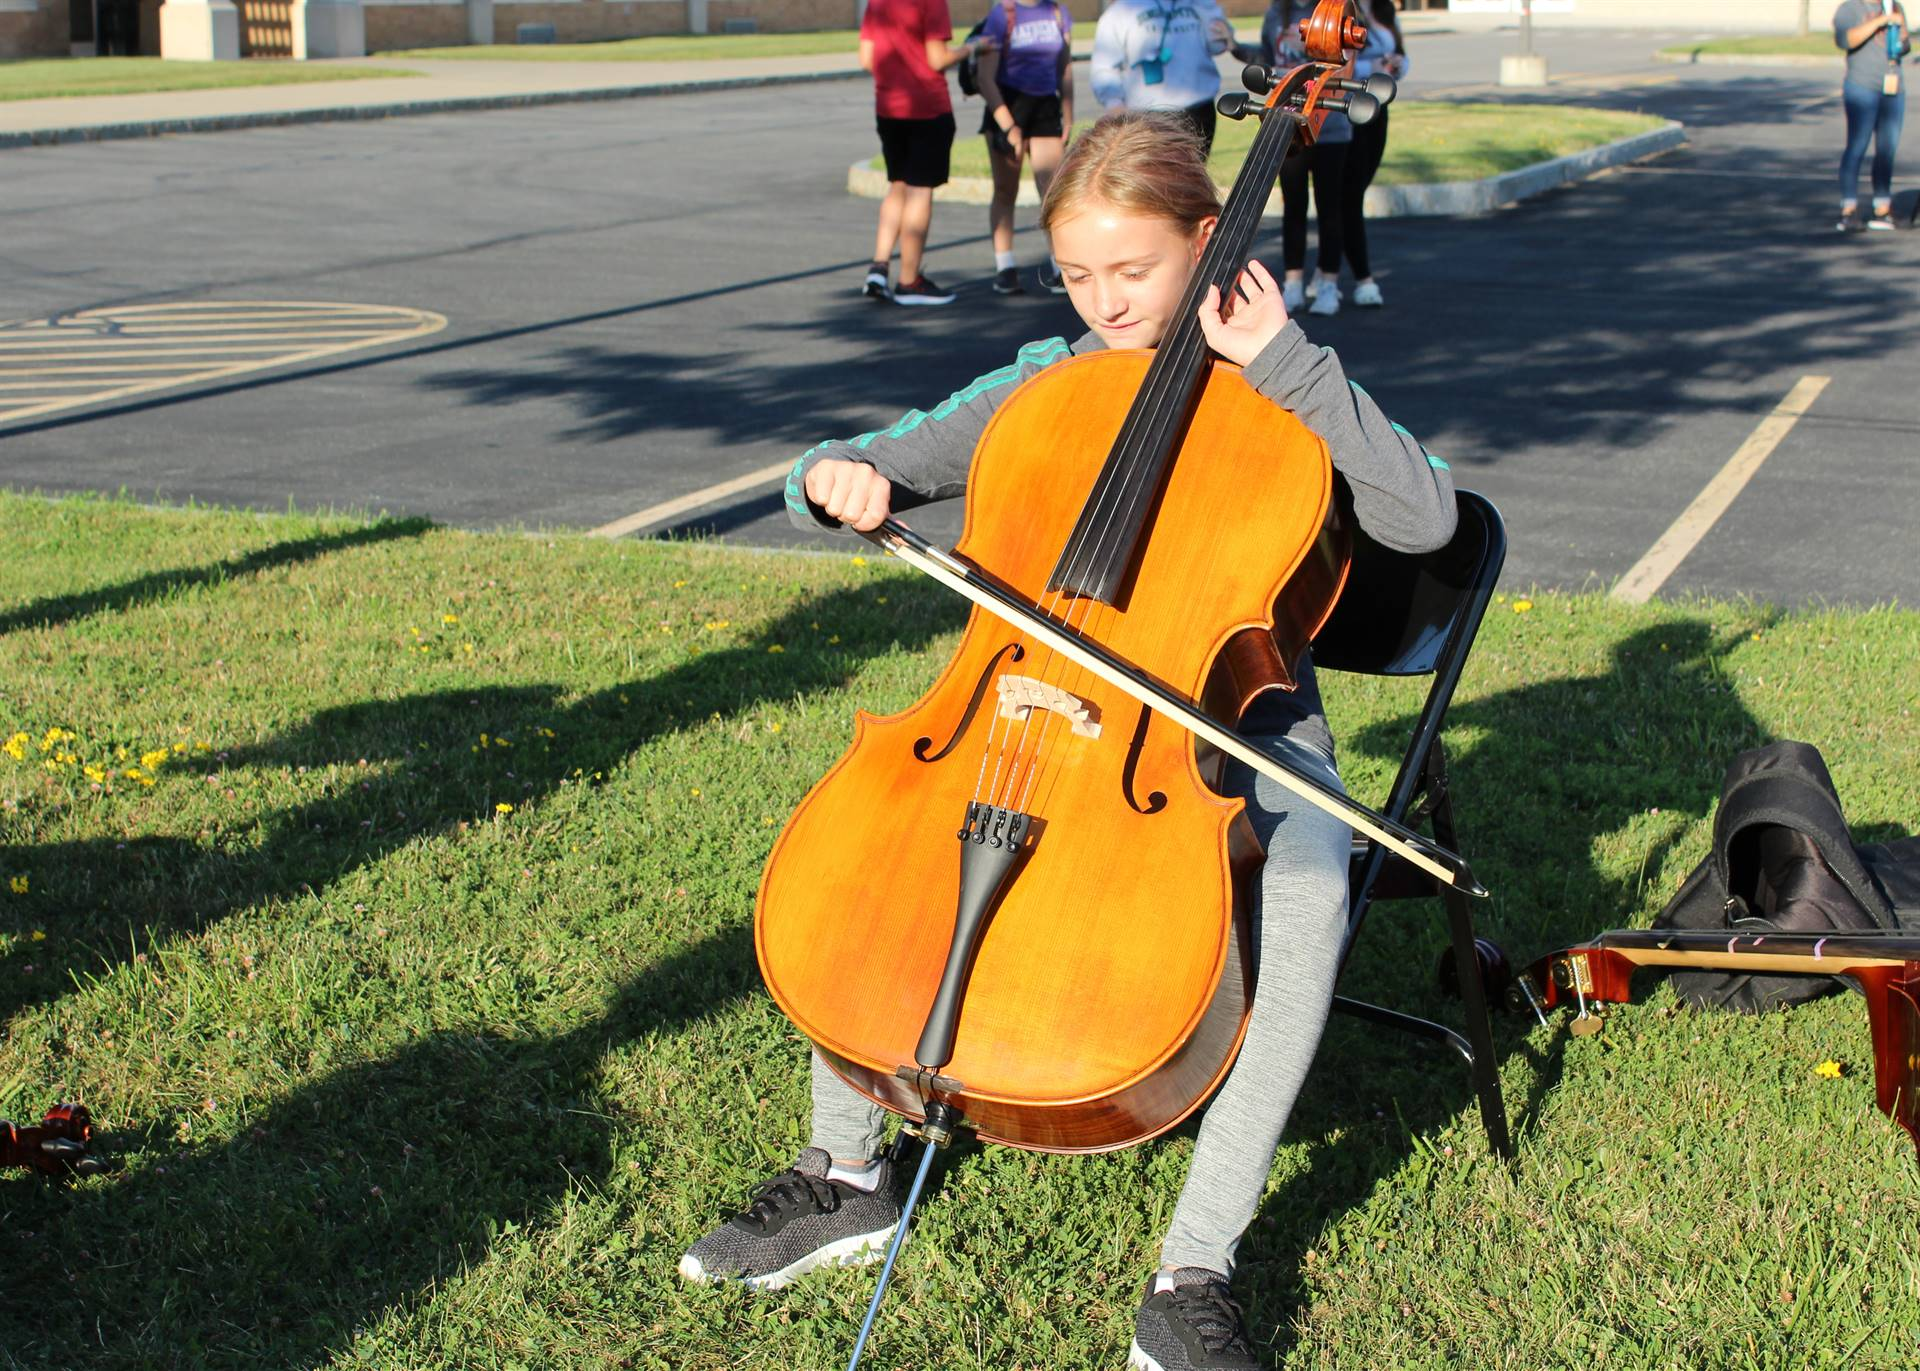 Student trying an instrument